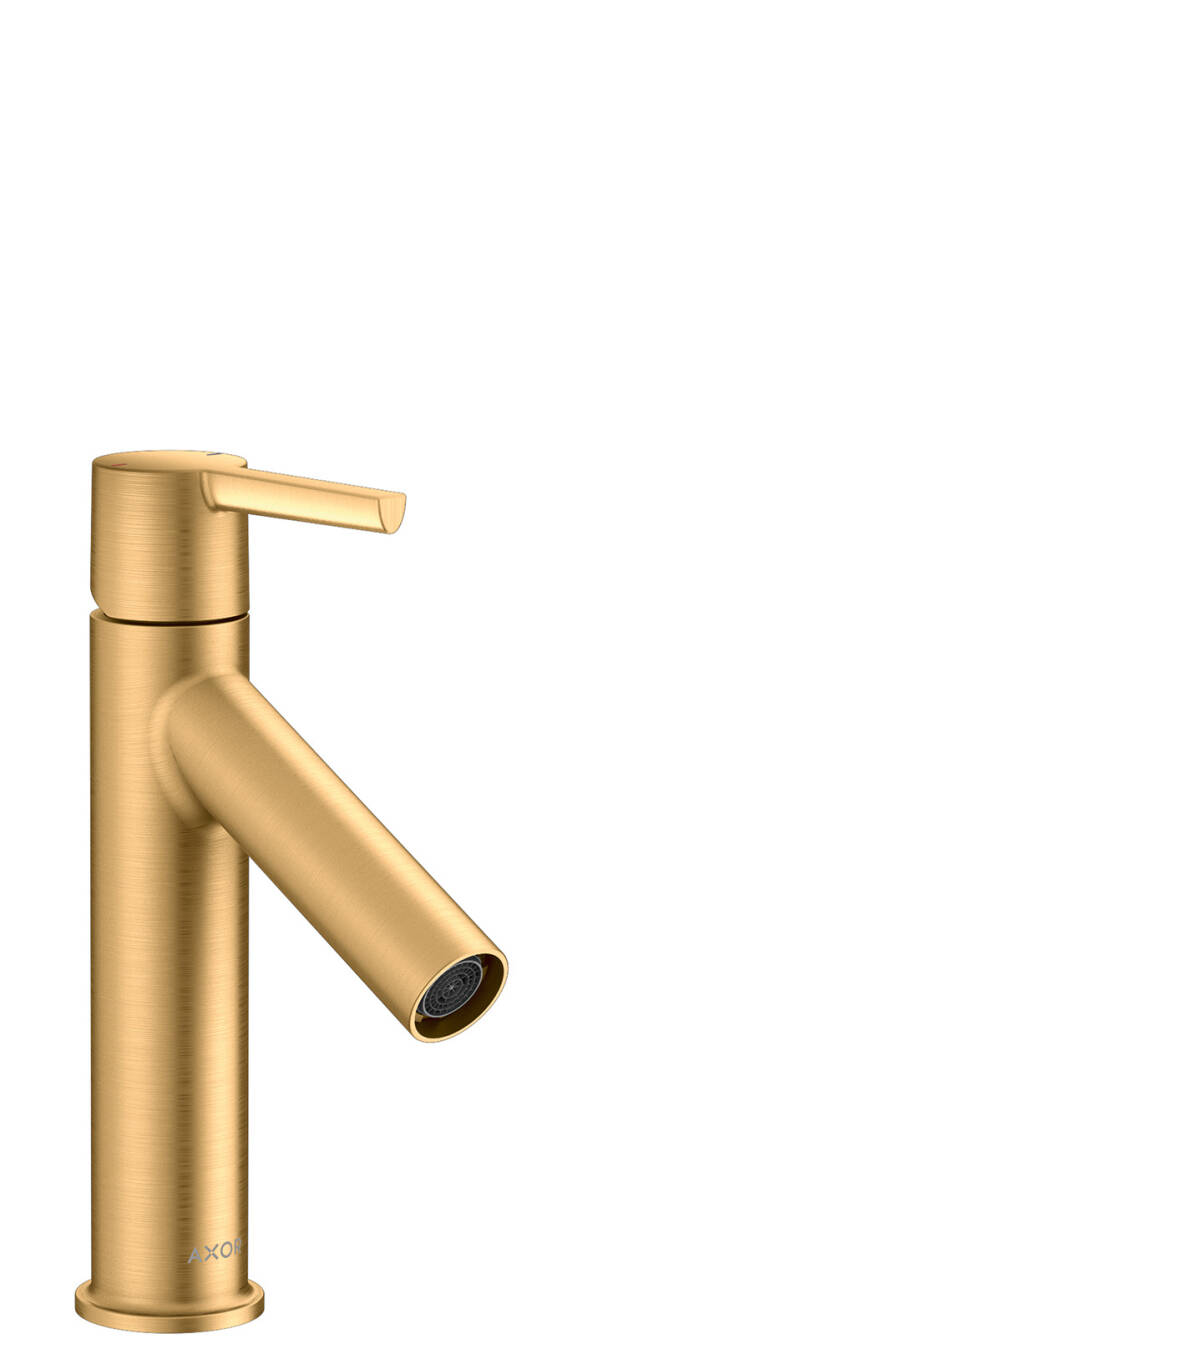 Single lever basin mixer 100 with lever handle and waste set, Brushed Brass, 10003950